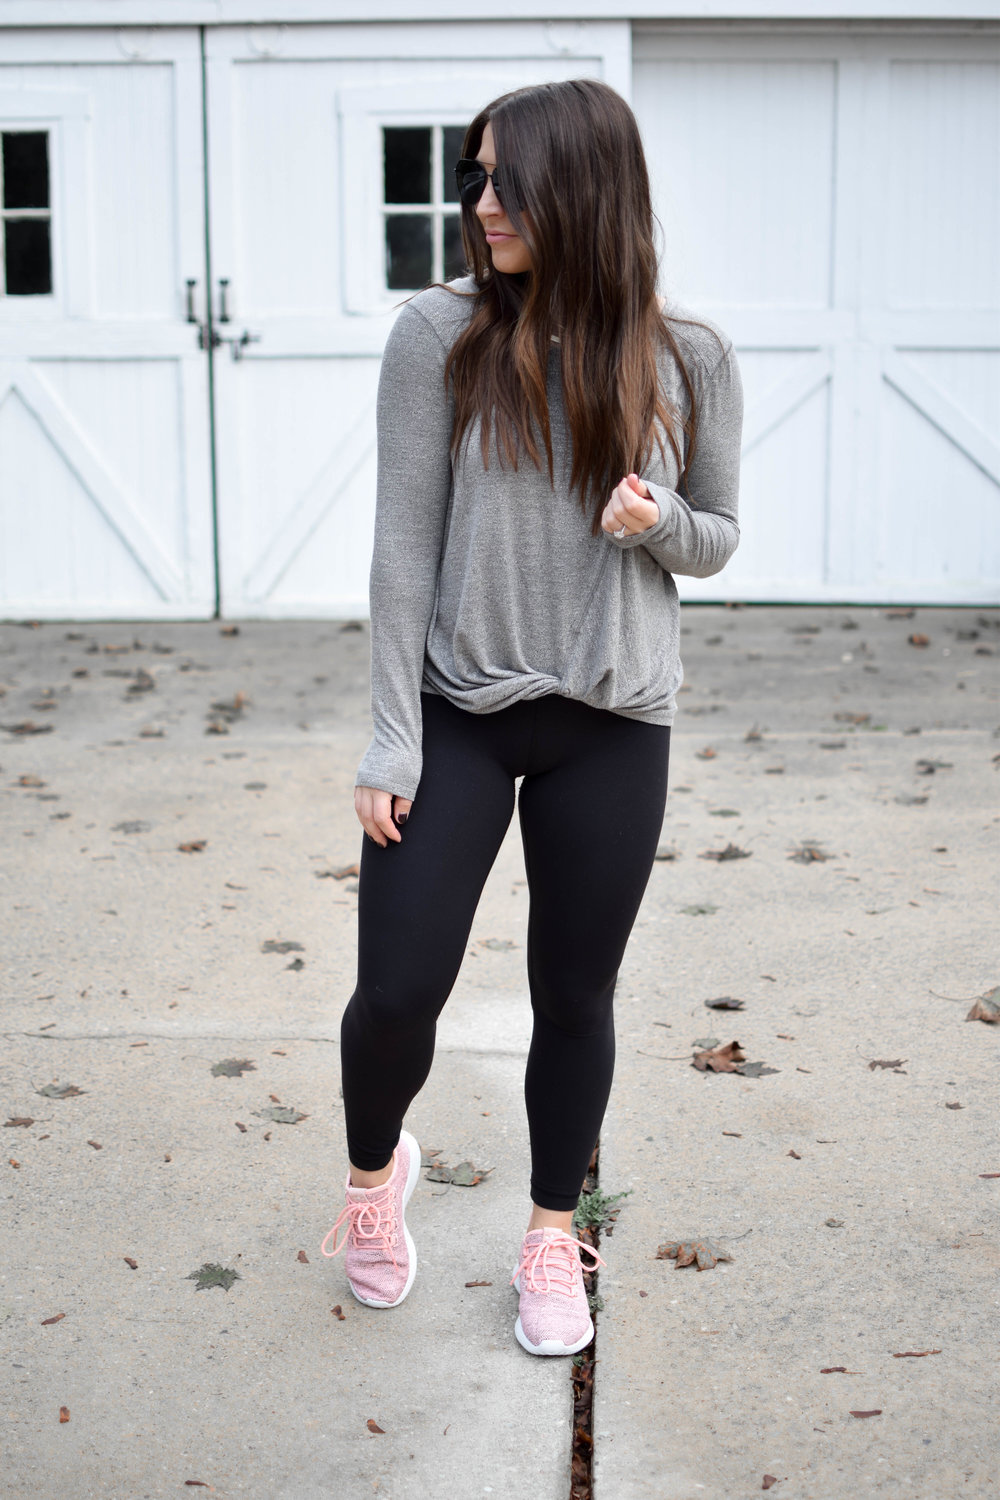 how to wear the athleisure trend / athleisure for fall / fall style / six week workout plan / Zella knotted top / Lululemon Align II Pant / Adidas sneakers